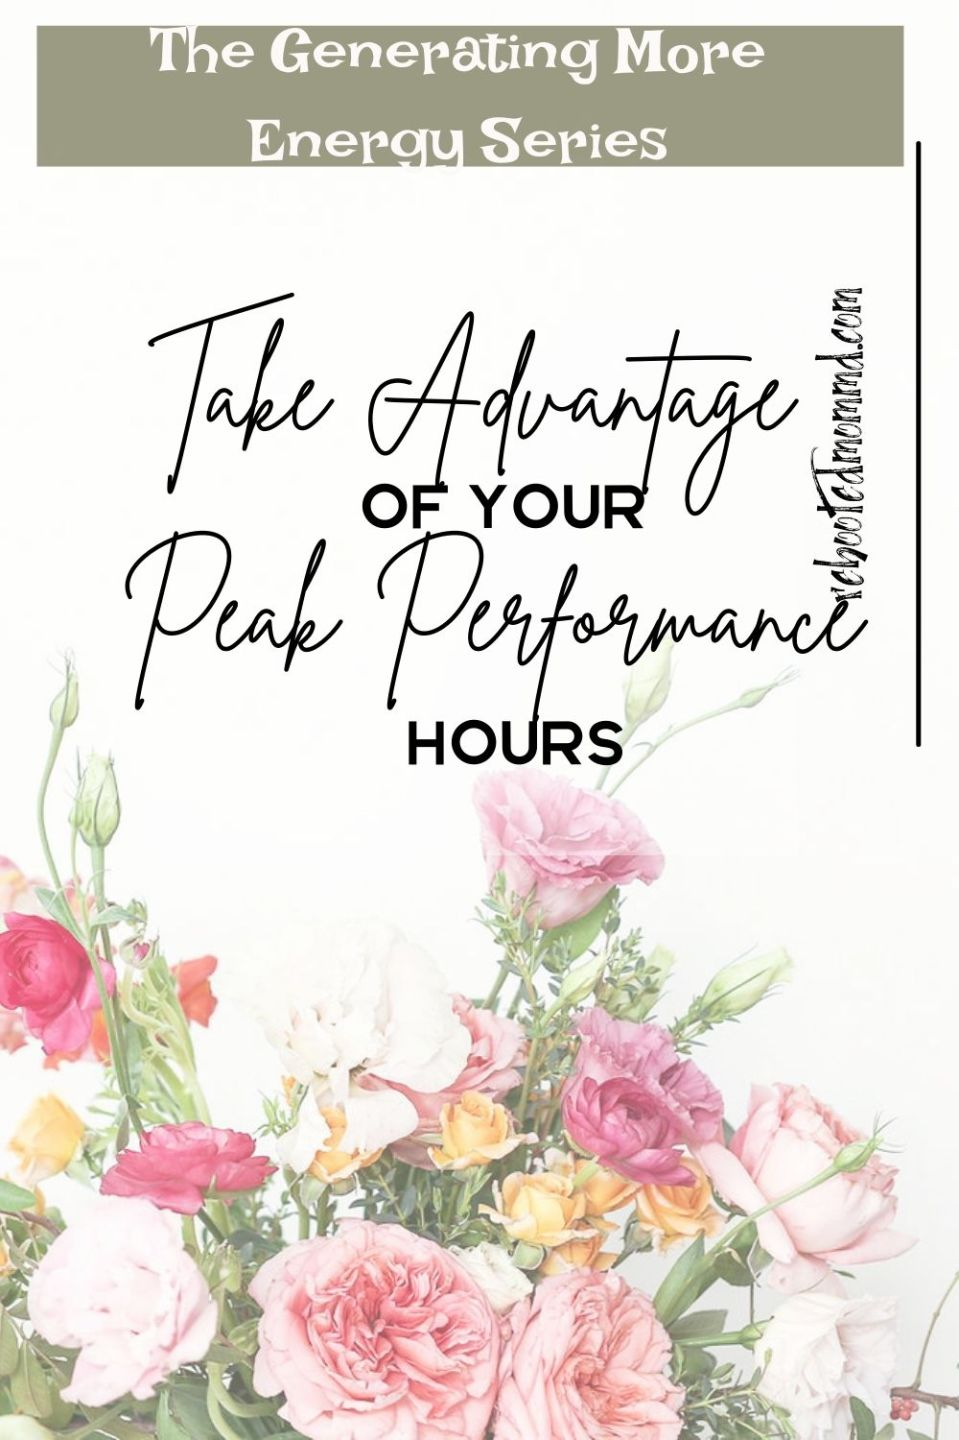 Take Advantage of your Peak Performance Hours